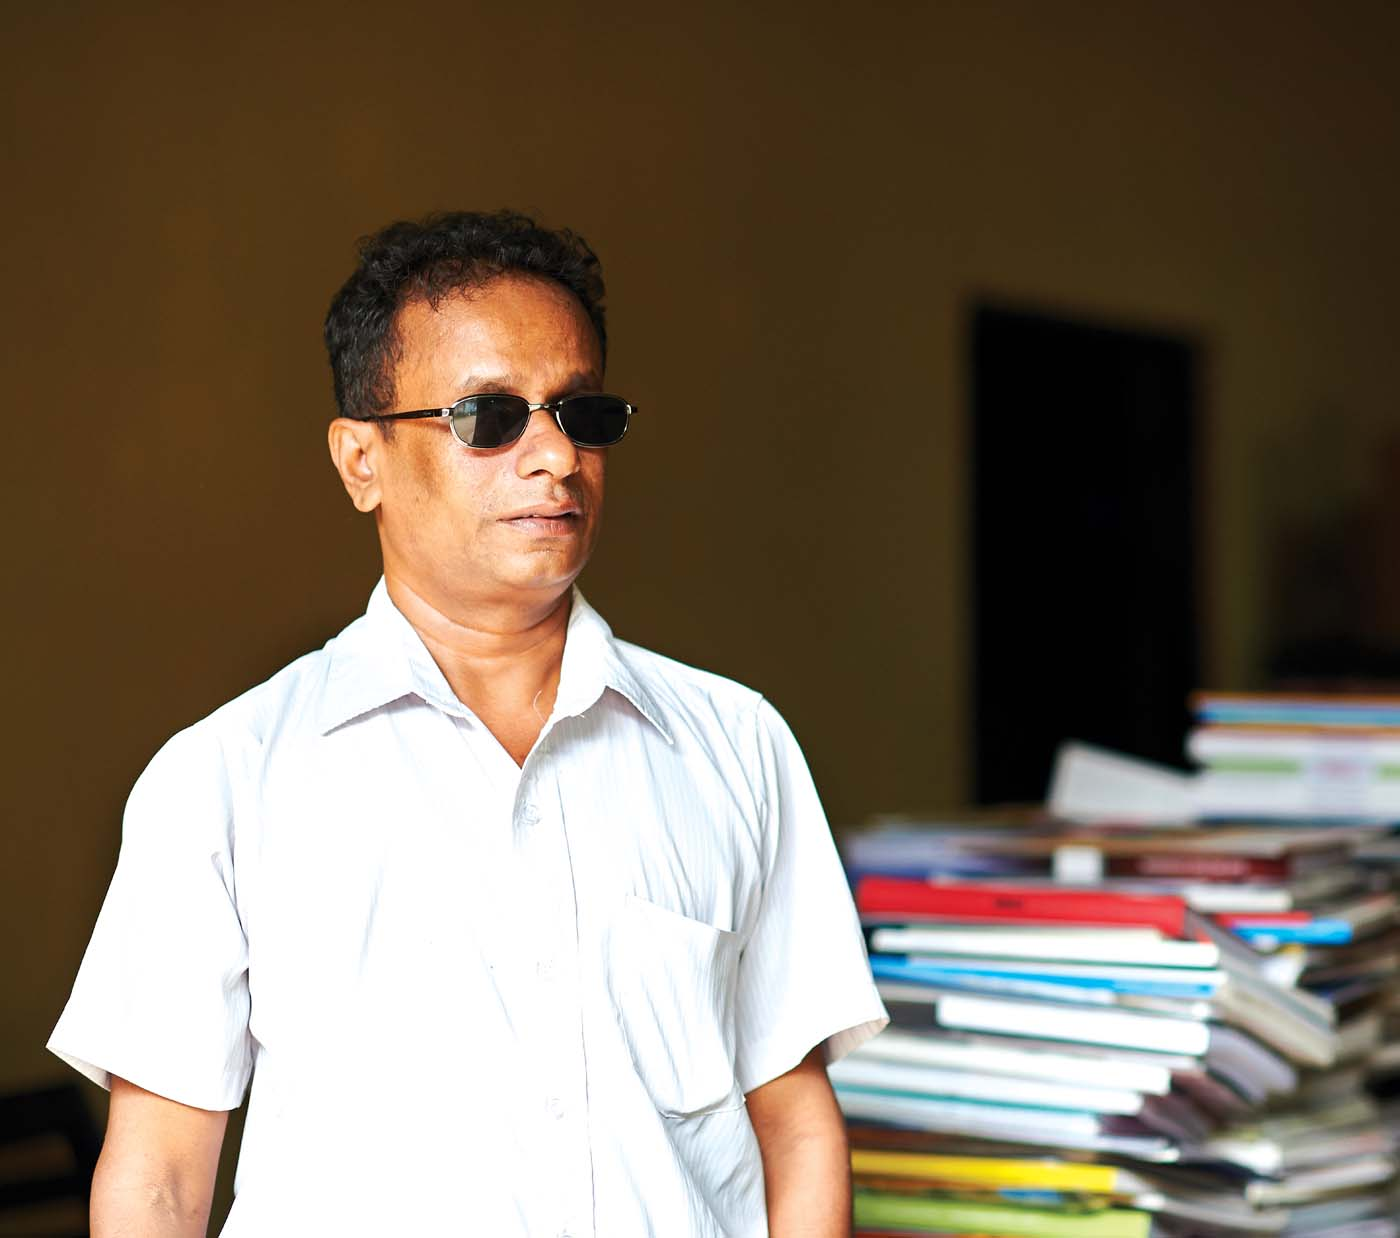 """Throughout my life I was impelled by a brightly flaming dream—that I would one-day be the owner of an enormously vast library of books. And today, I am the most fortunate man in the world, because my dream has come true."" Nishantha Mendis - Treasurer of the Blind Federation"